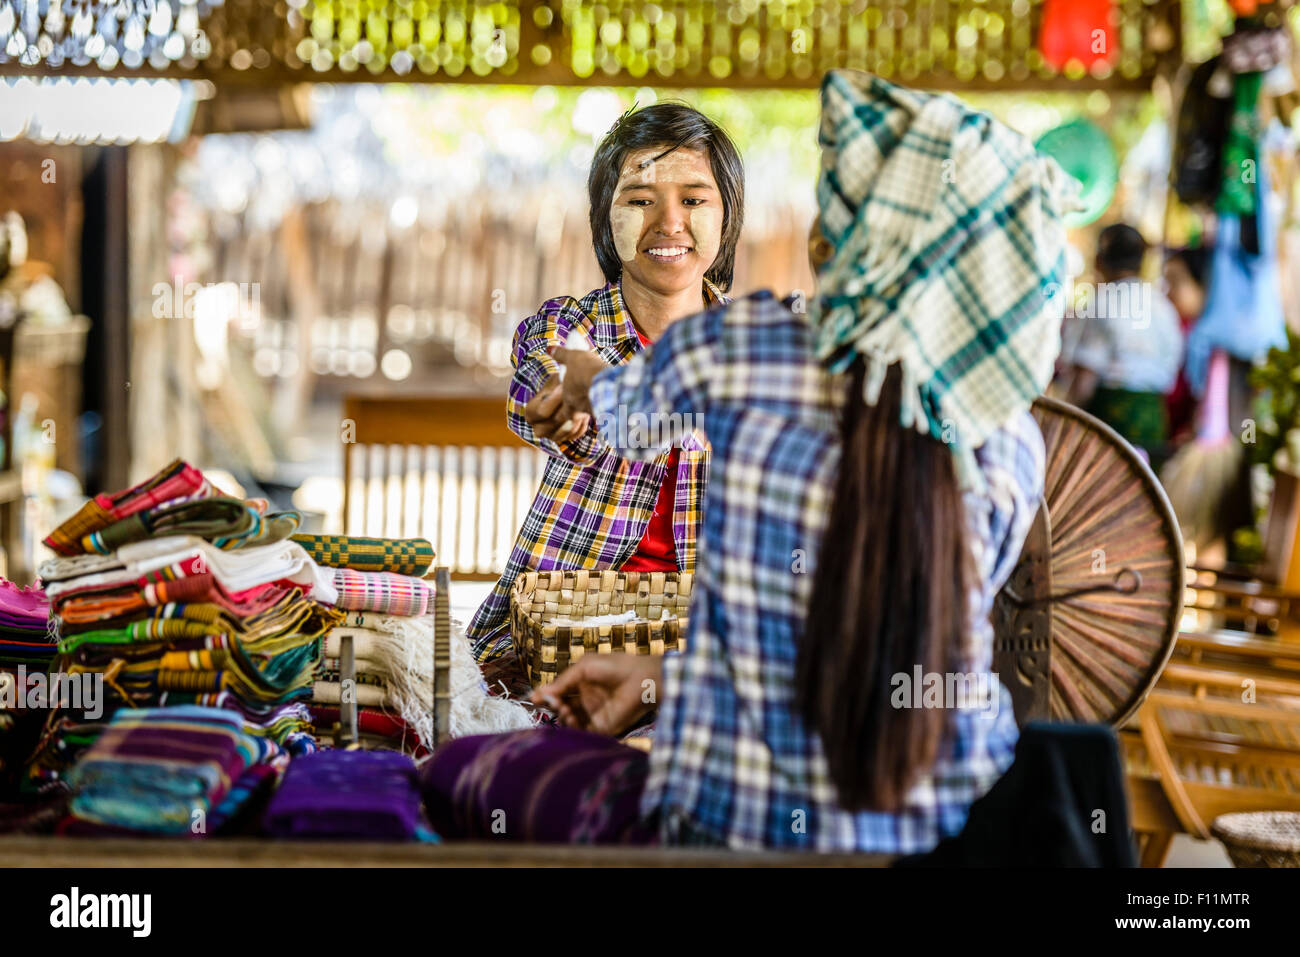 Asian teenage boy selling fabric at market - Stock Image